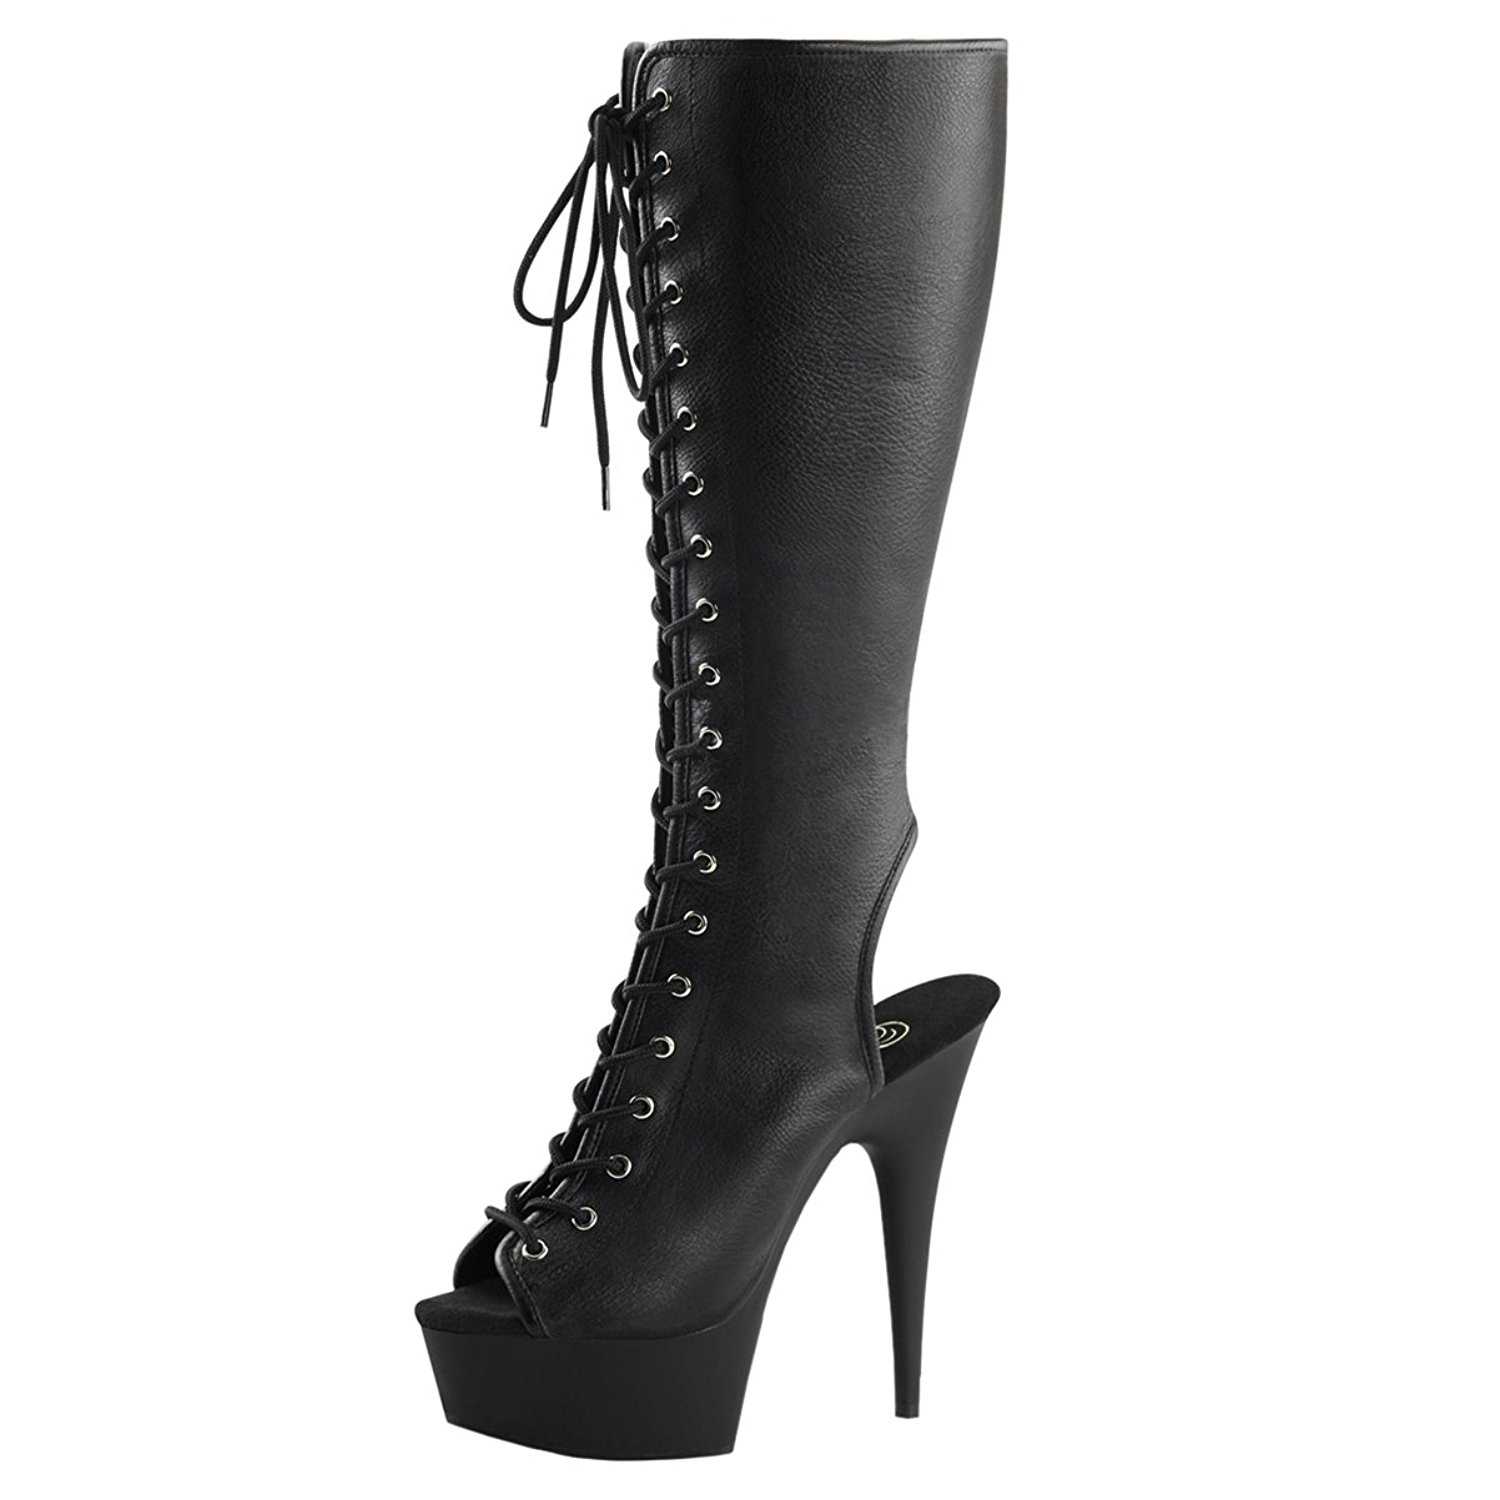 107c4f65439 Get Quotations · Summitfashions Womens Lace up High Heel Boots Black Peep  Toe Shoes Knee High 6 inch Heels